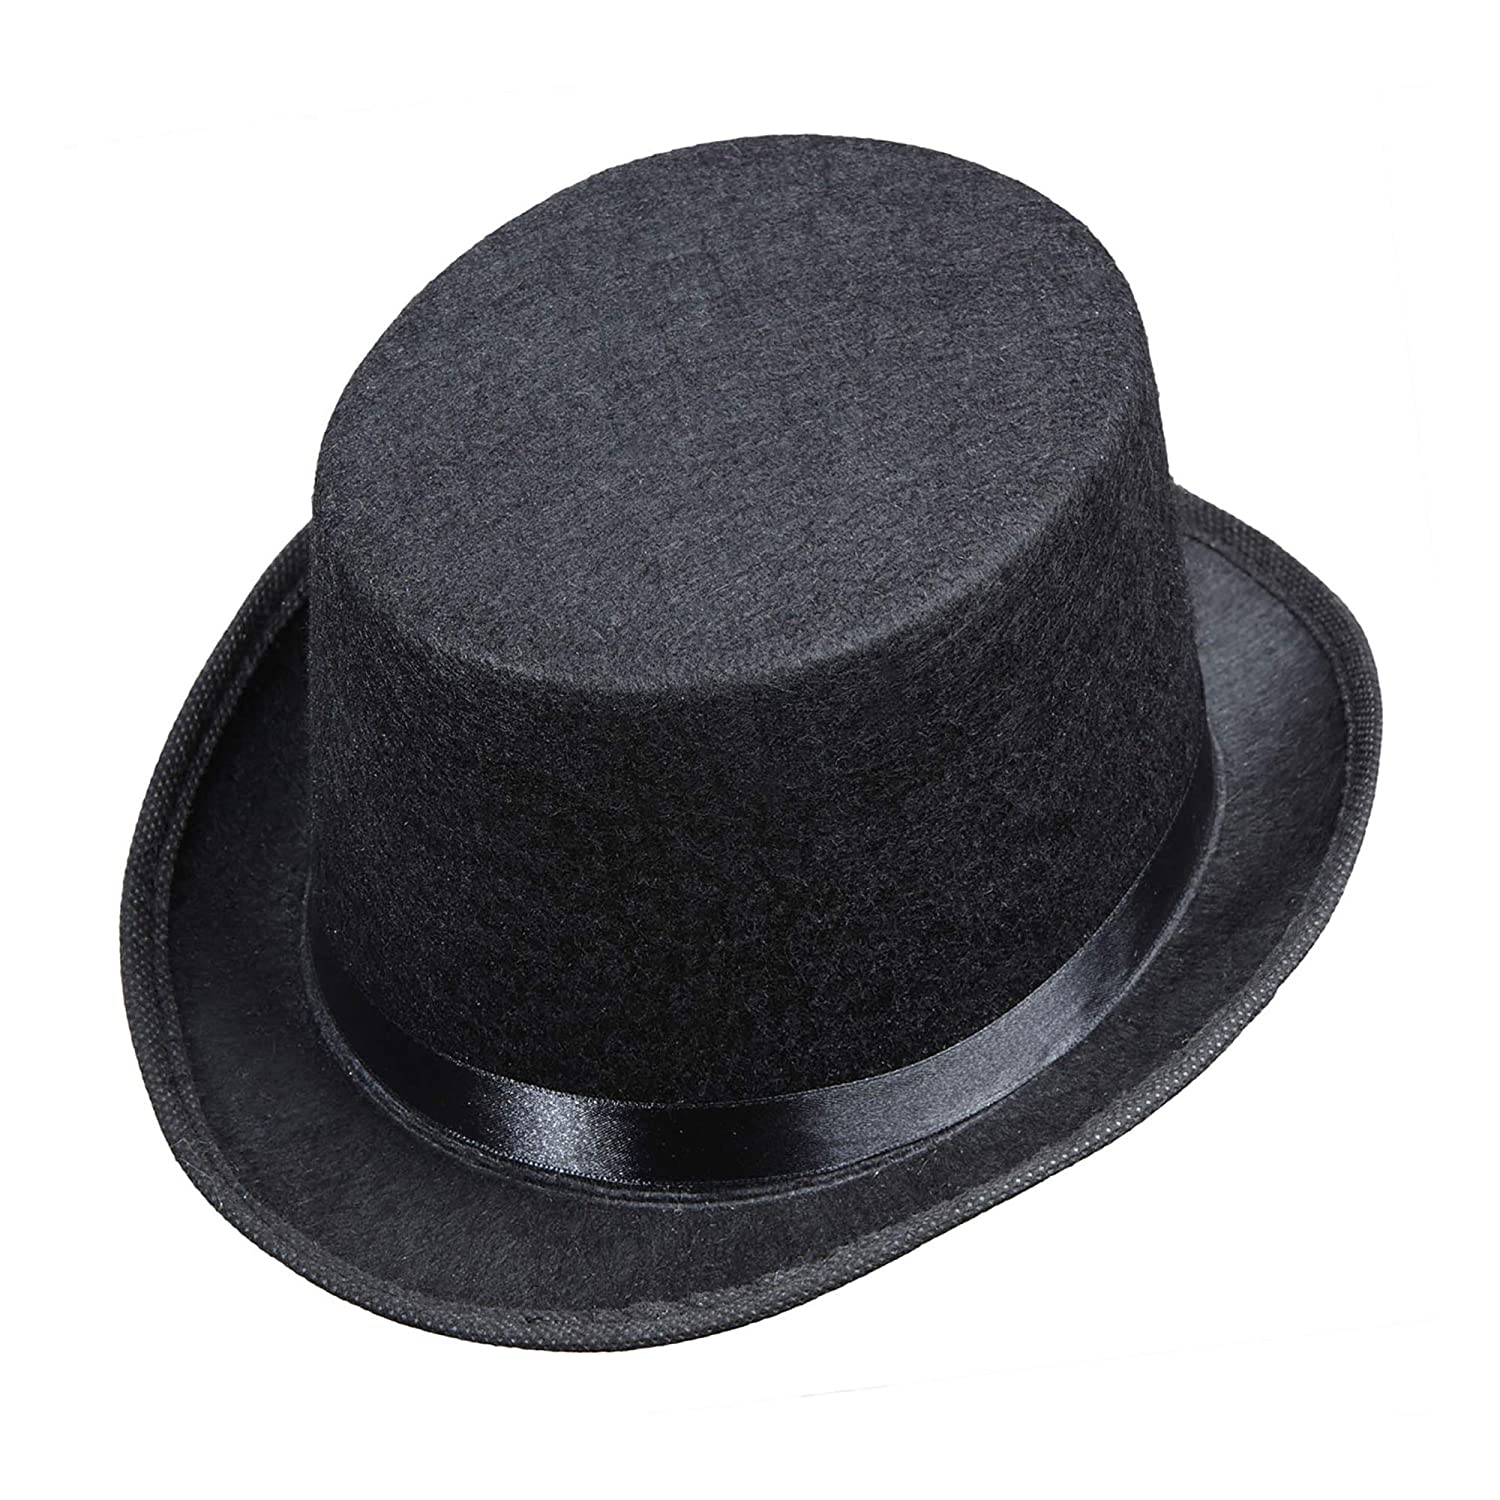 6067db4f512 Top Felt Child Size - Black Felt Top Hats Caps   Headwear for Fancy Dress  Costumes Accessory  Amazon.co.uk  Toys   Games